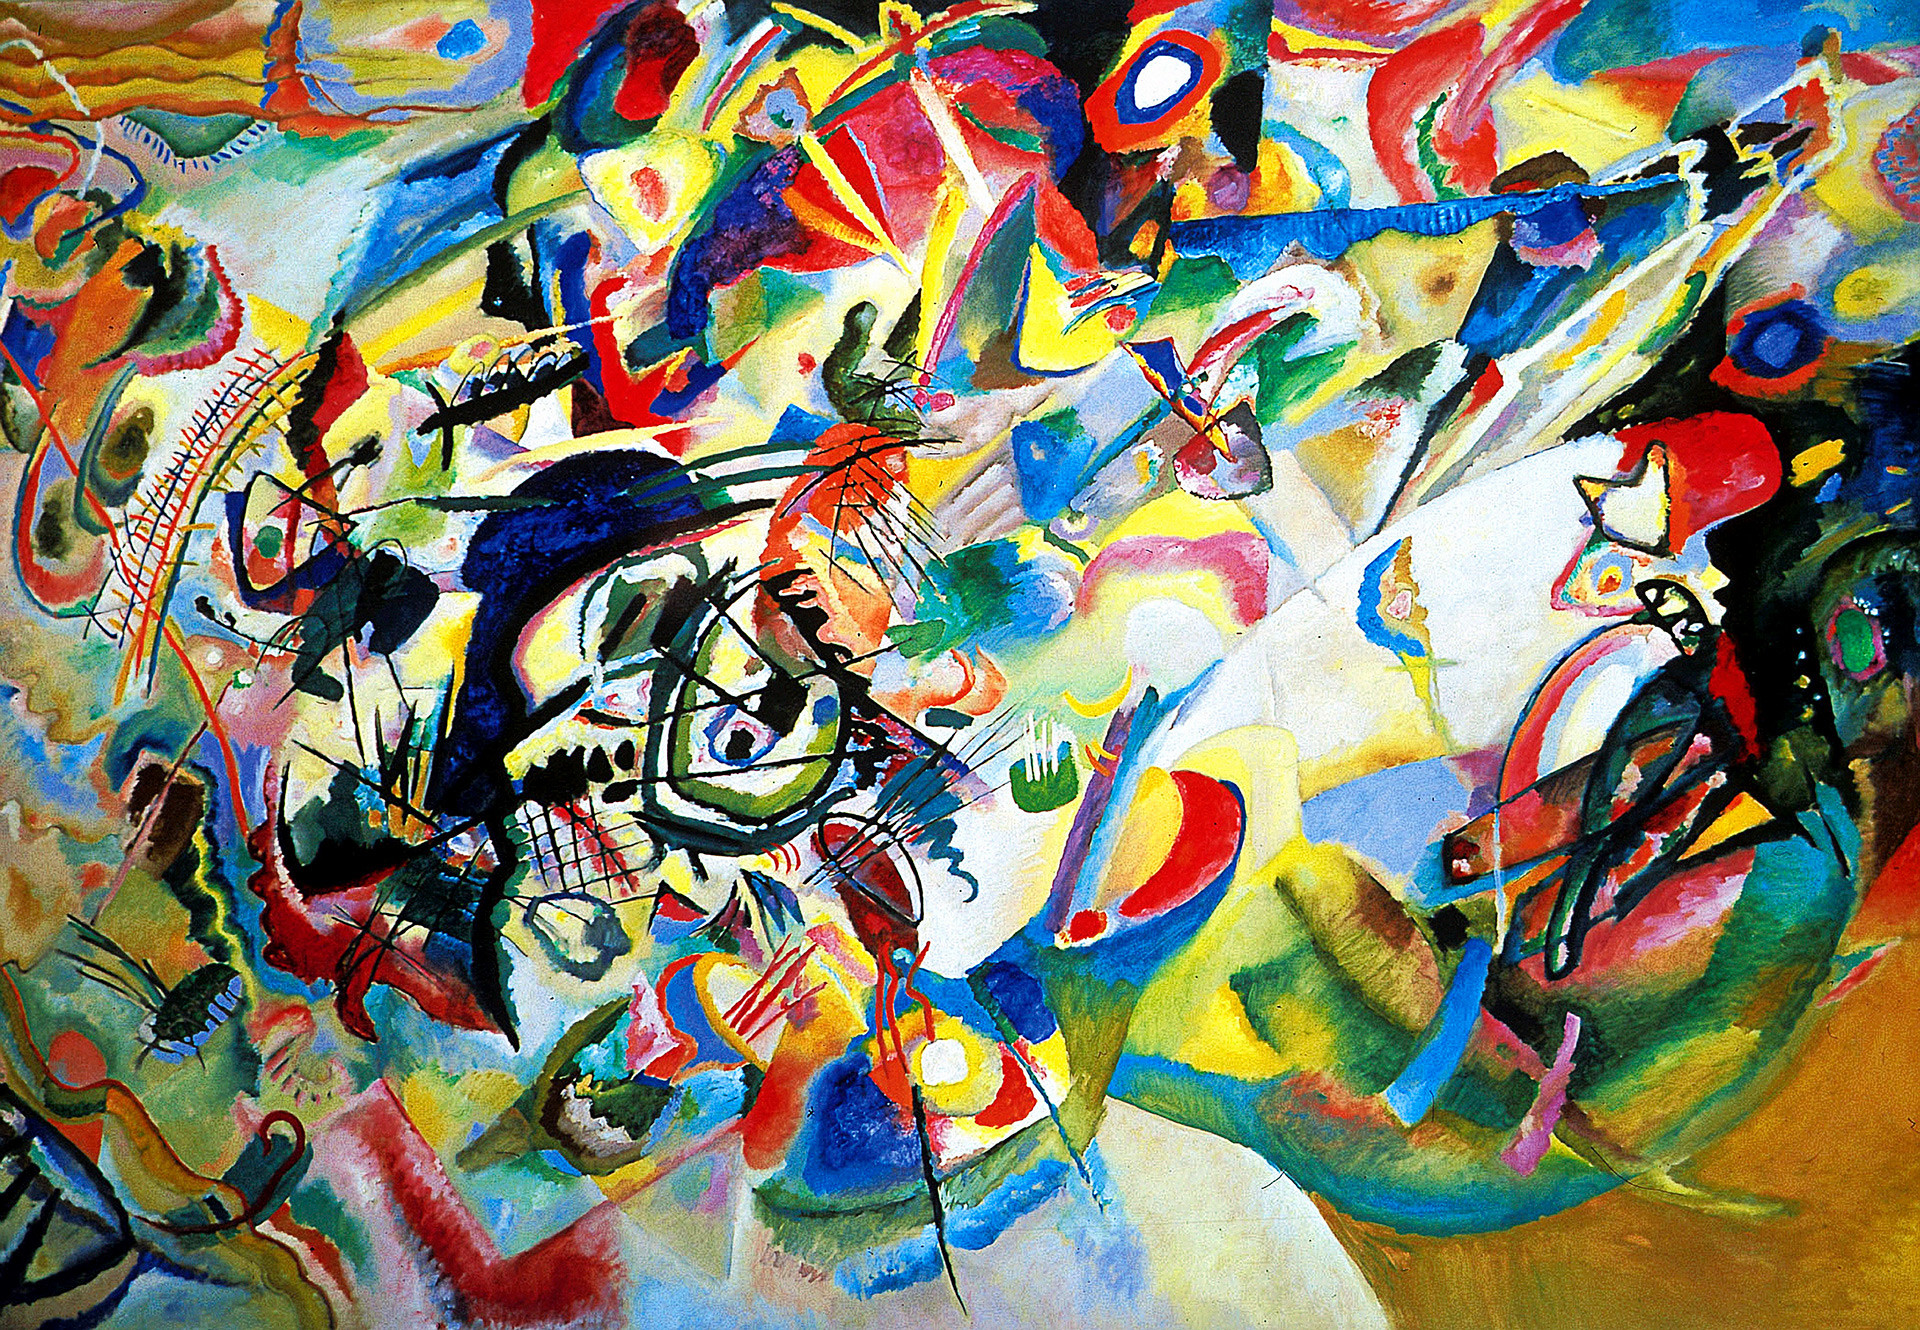 Composition VII by Wassily Kandinsky. 1913.